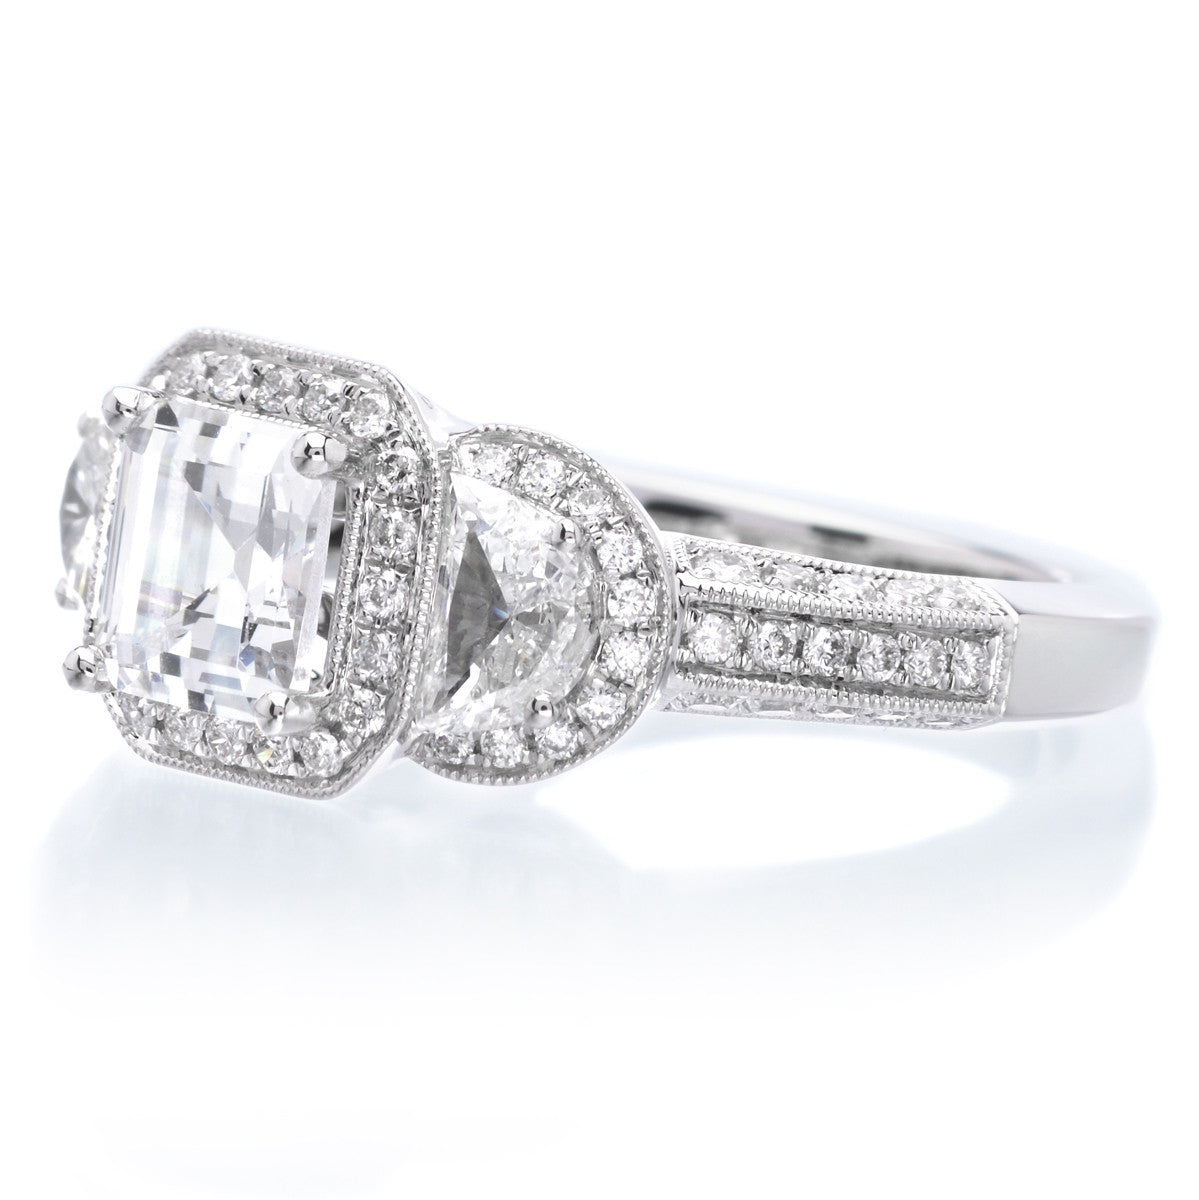 18K White Gold Three-Stone Emerald-Cut Halo Engagement Ring Setting